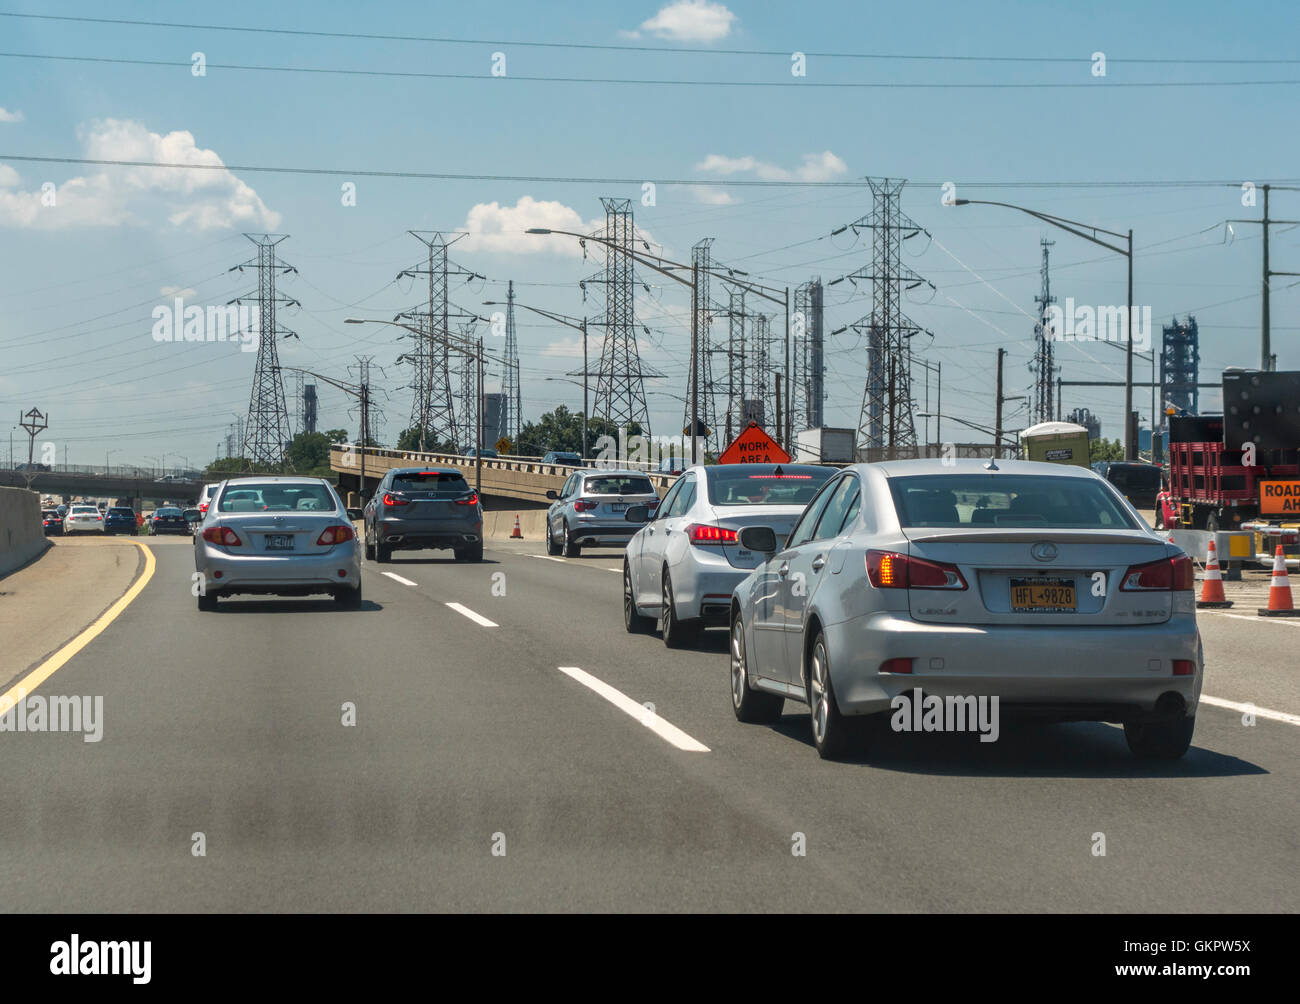 new jersey turnpike stock photos new jersey turnpike stock new jersey turnpike cars electricity pylons and power lines along the road stock image